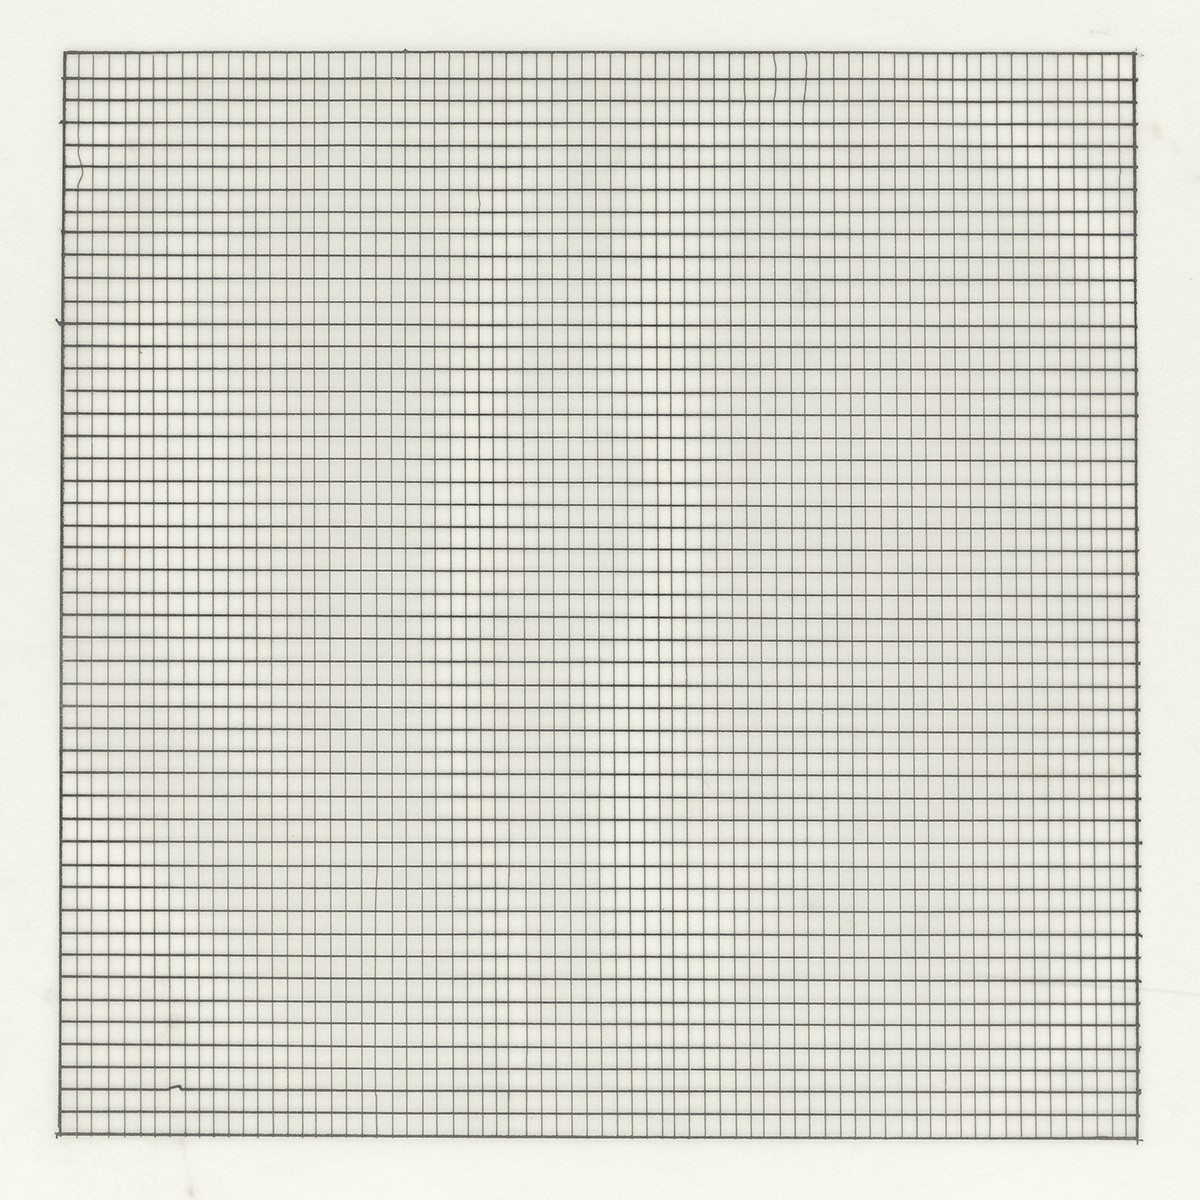 AGNES-MARTIN-Paintings-and-Drawings-Stedelijk-Museum-Portfol